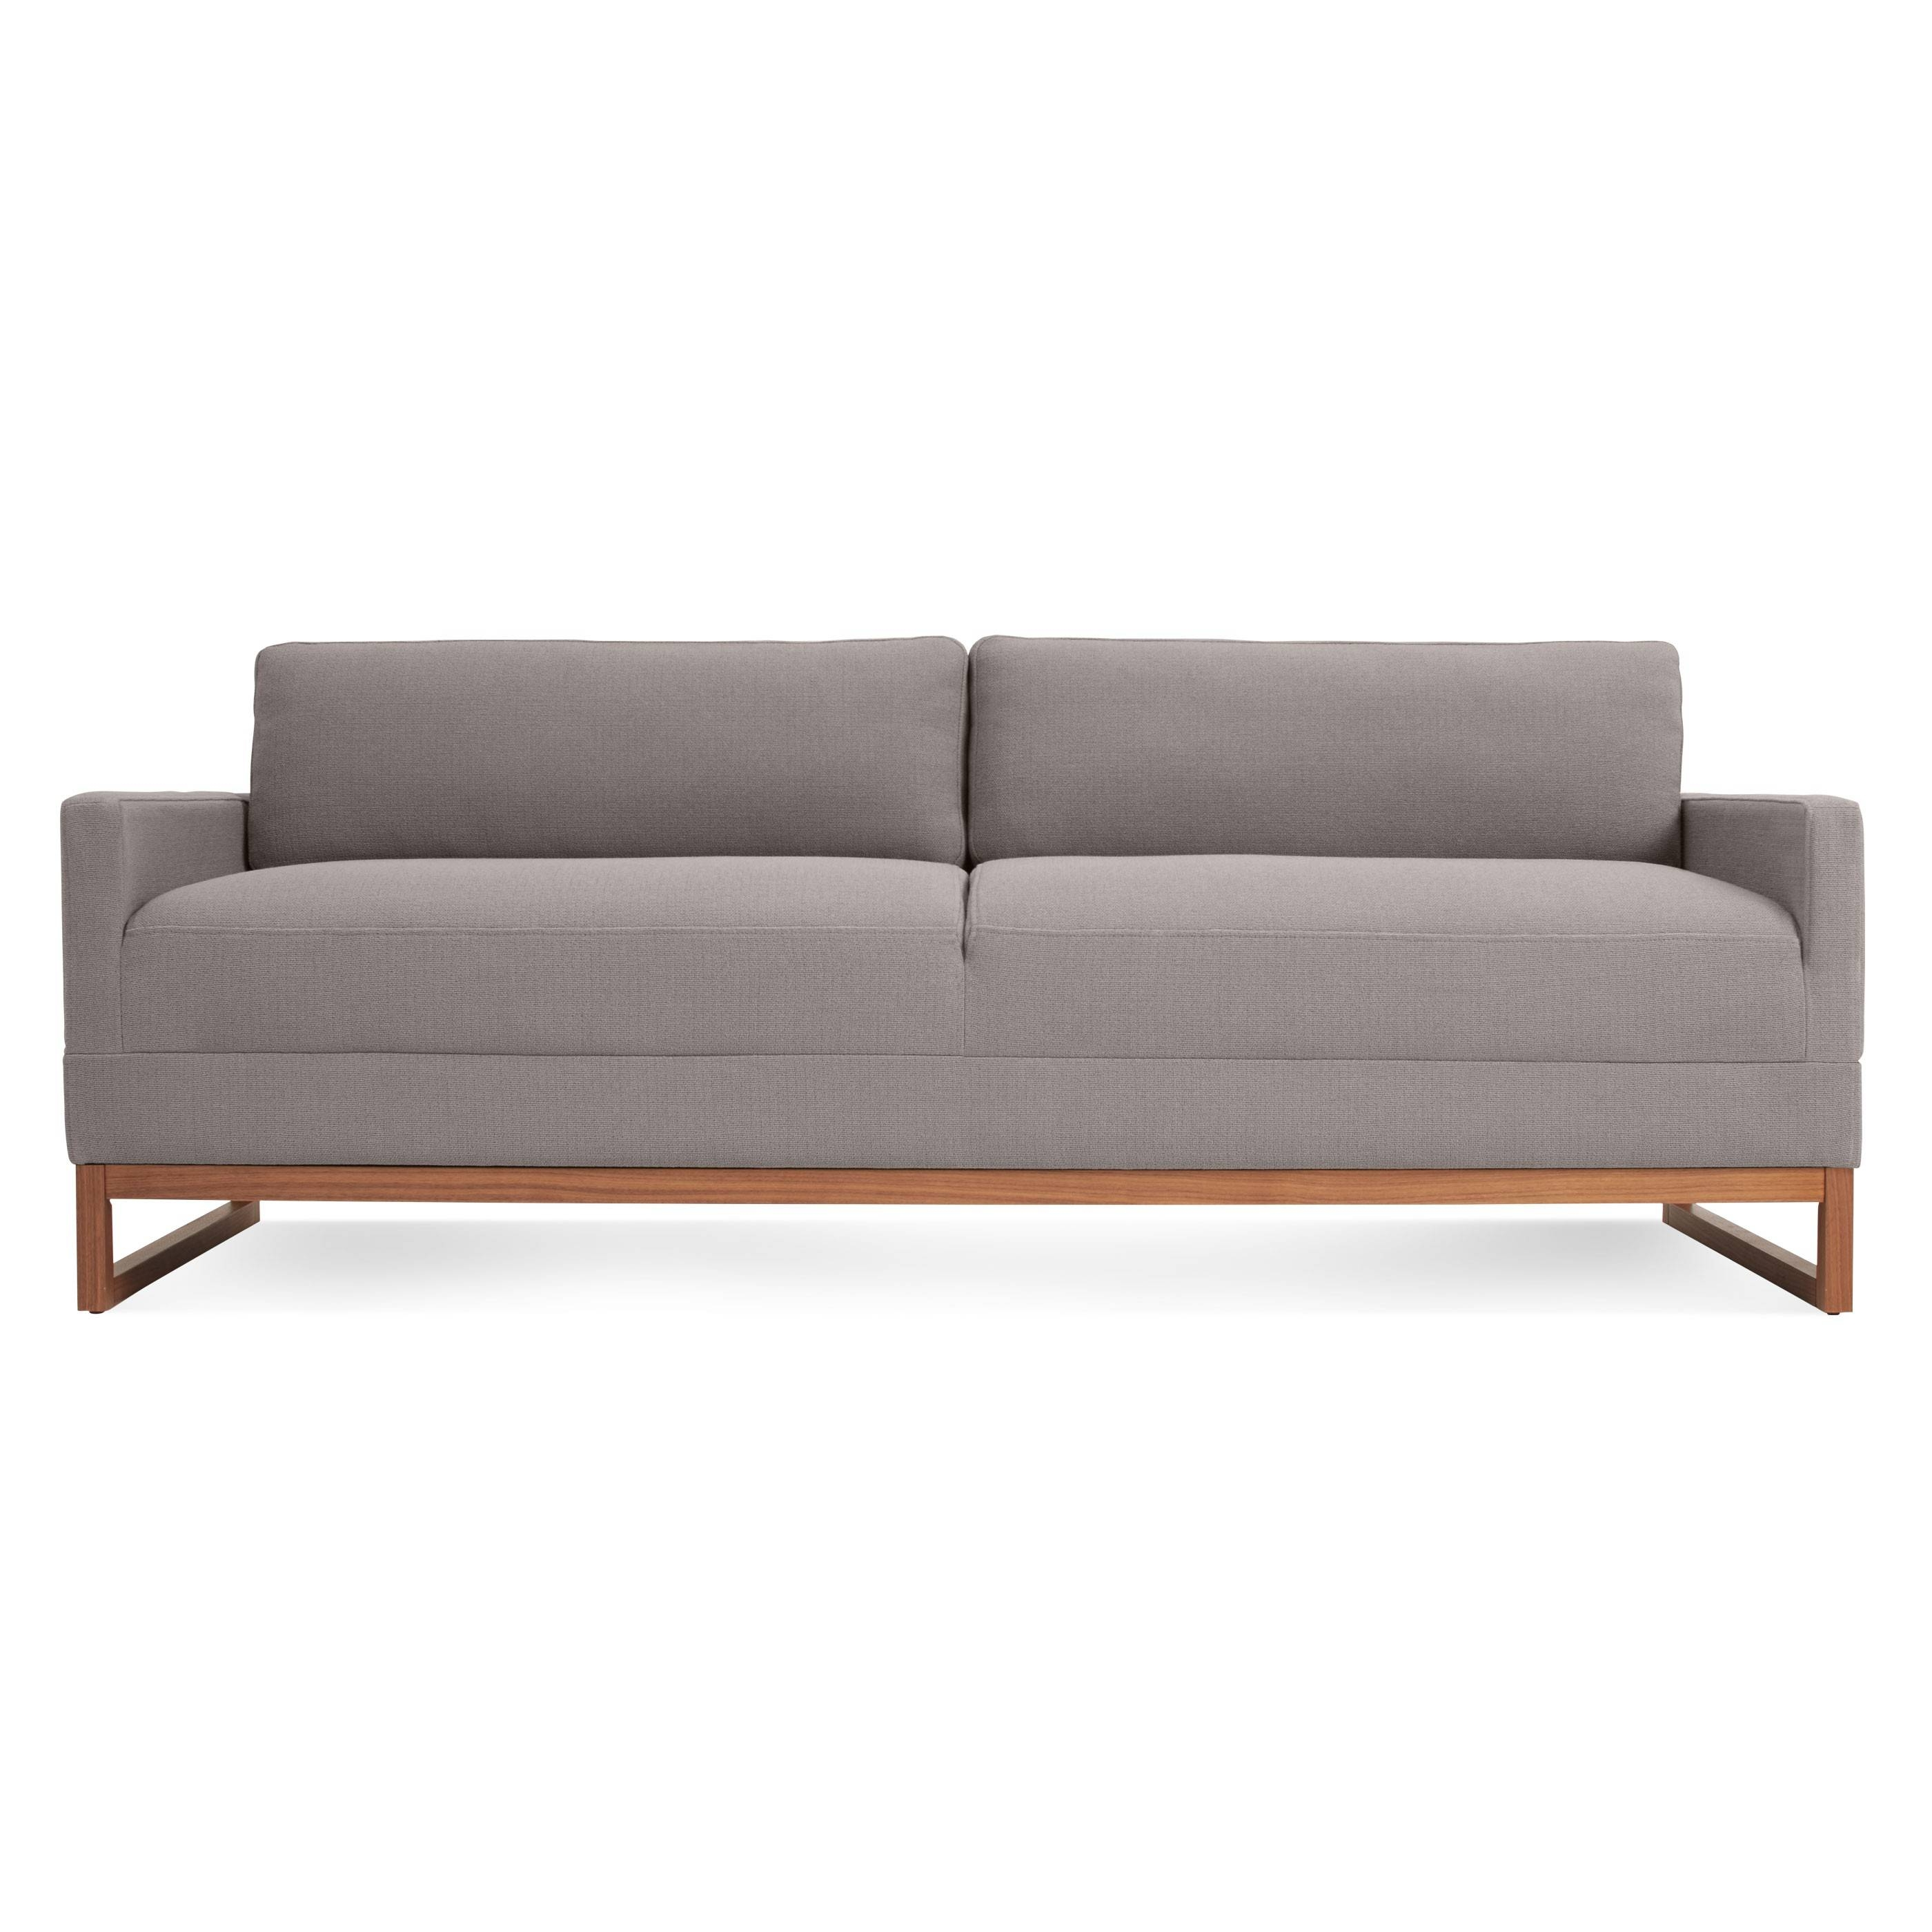 Sleeper Sofa – Diplomat Convertible Sofa | Blu Dot For Sleeper Sofas (View 9 of 15)